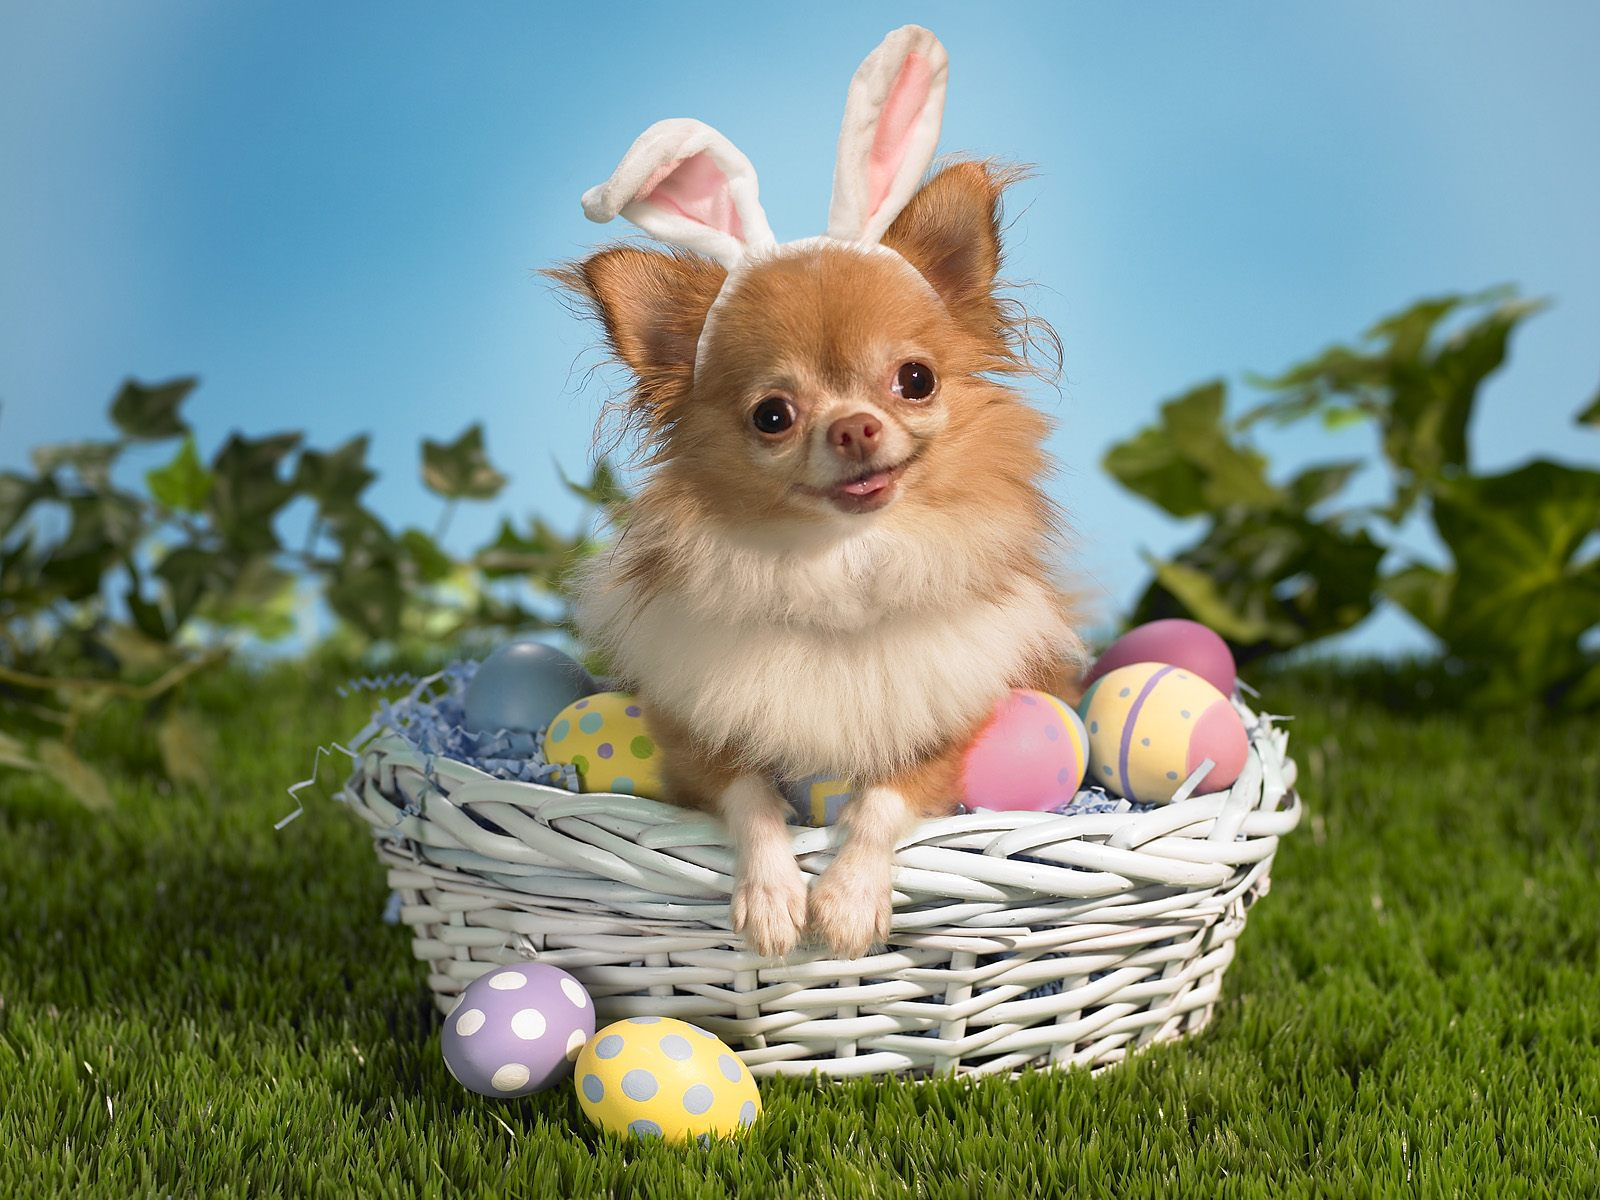 Funny Easter doggy picture 2021